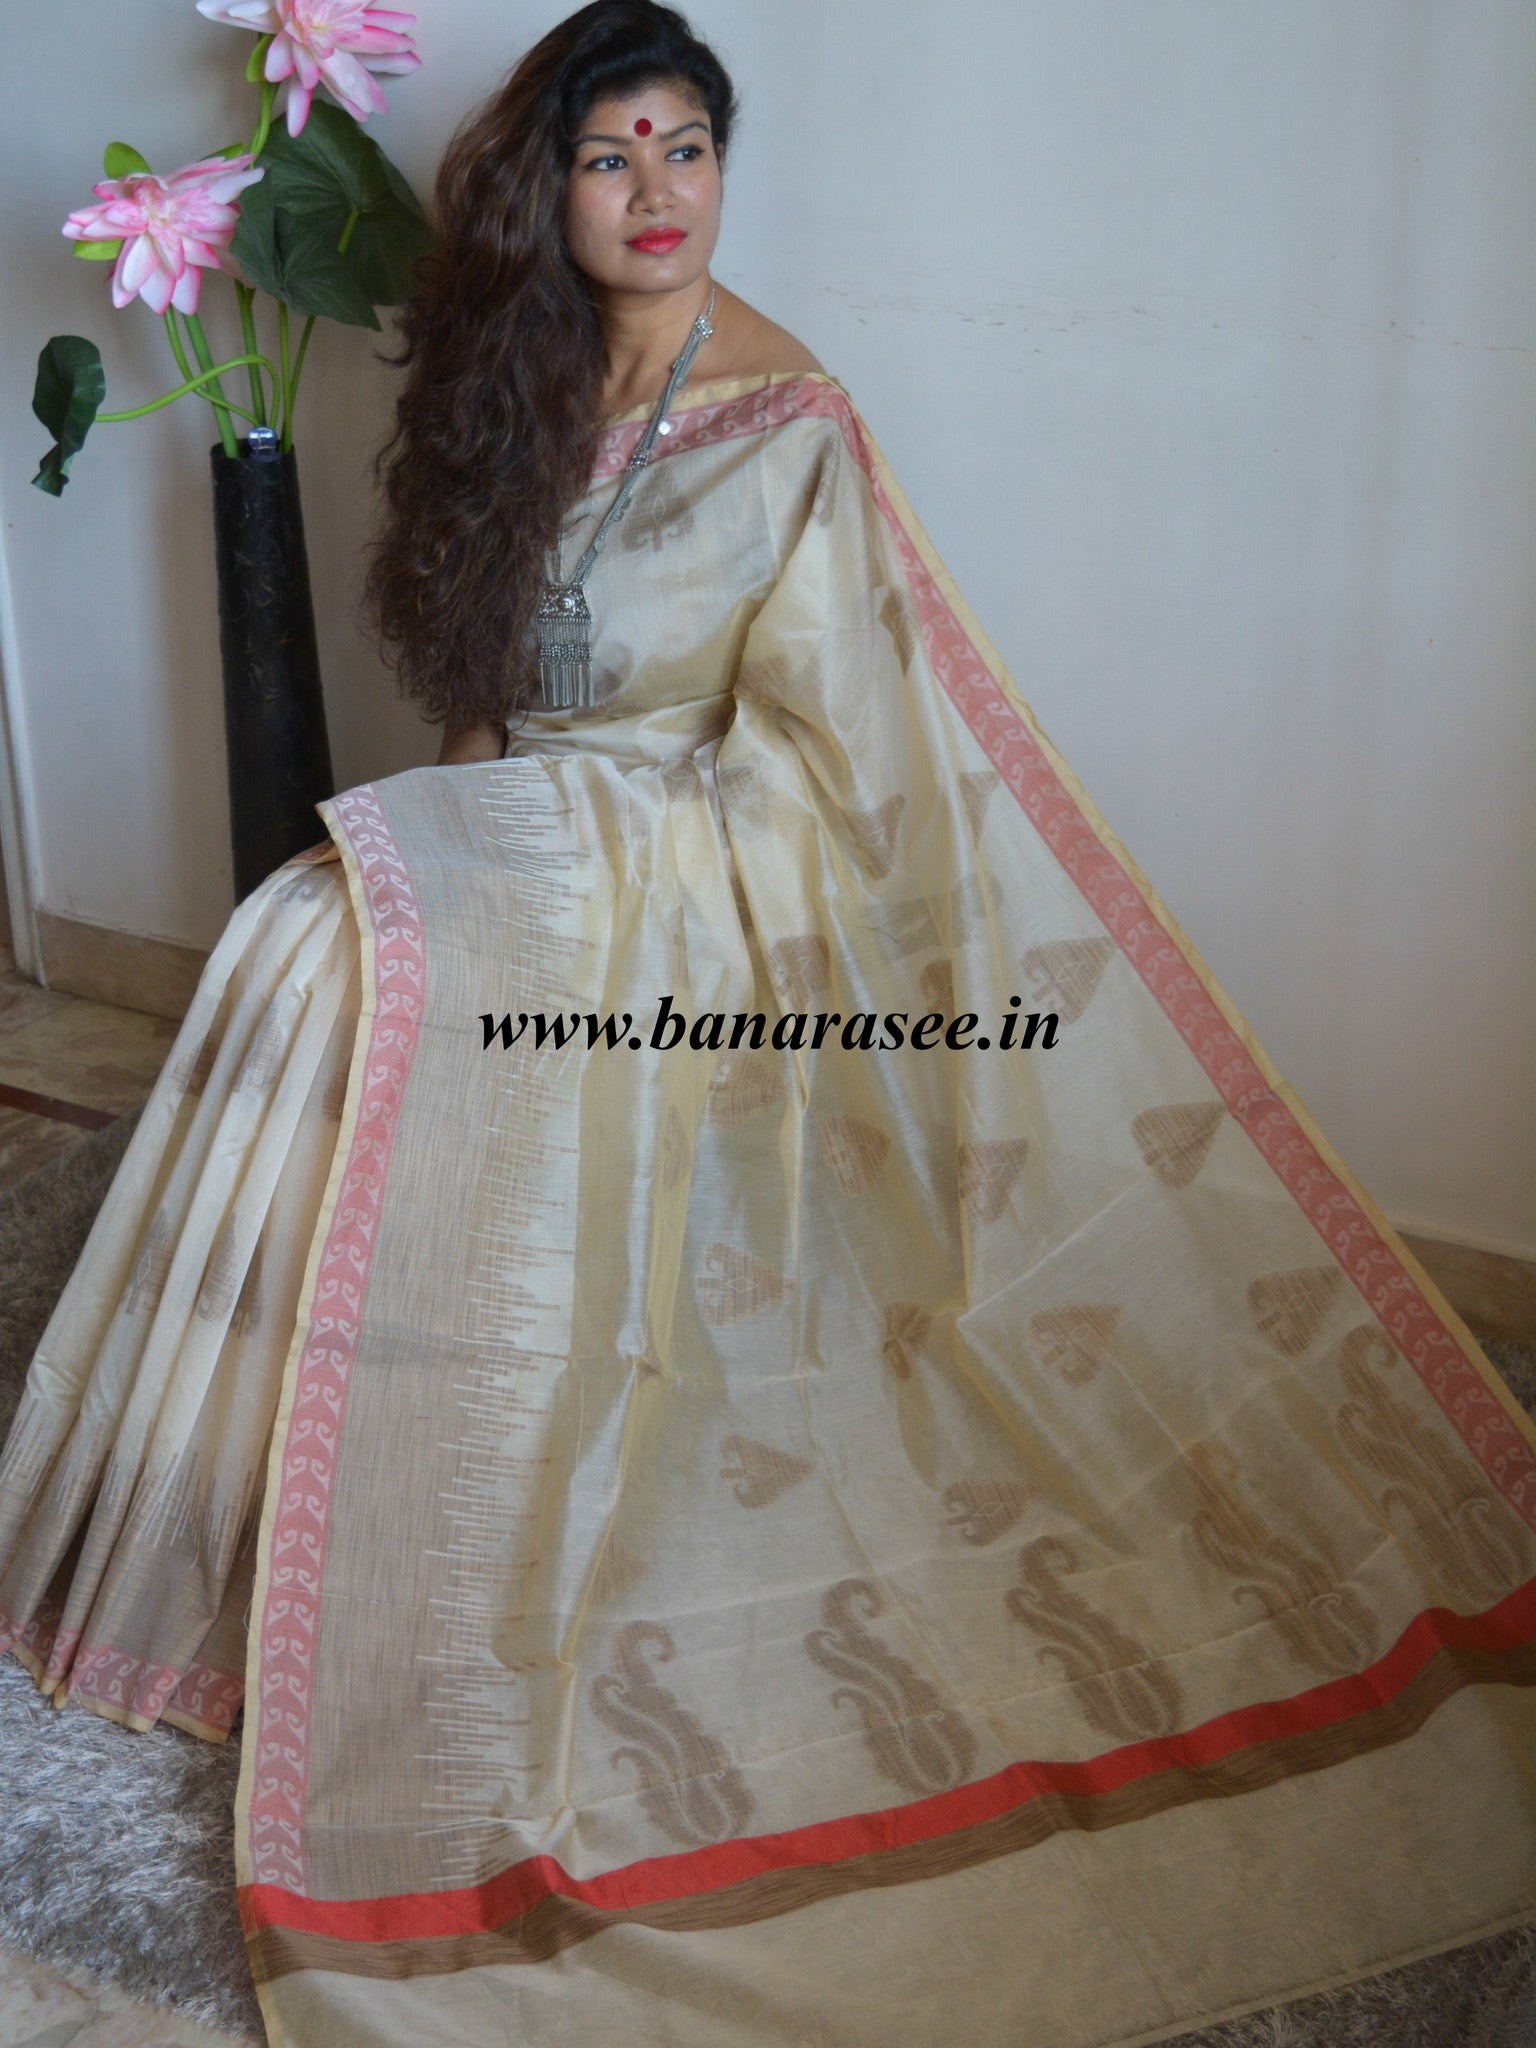 Banarasee/Banarasee Silk Cotton Saree Khichha Paan Buti Design-Beige